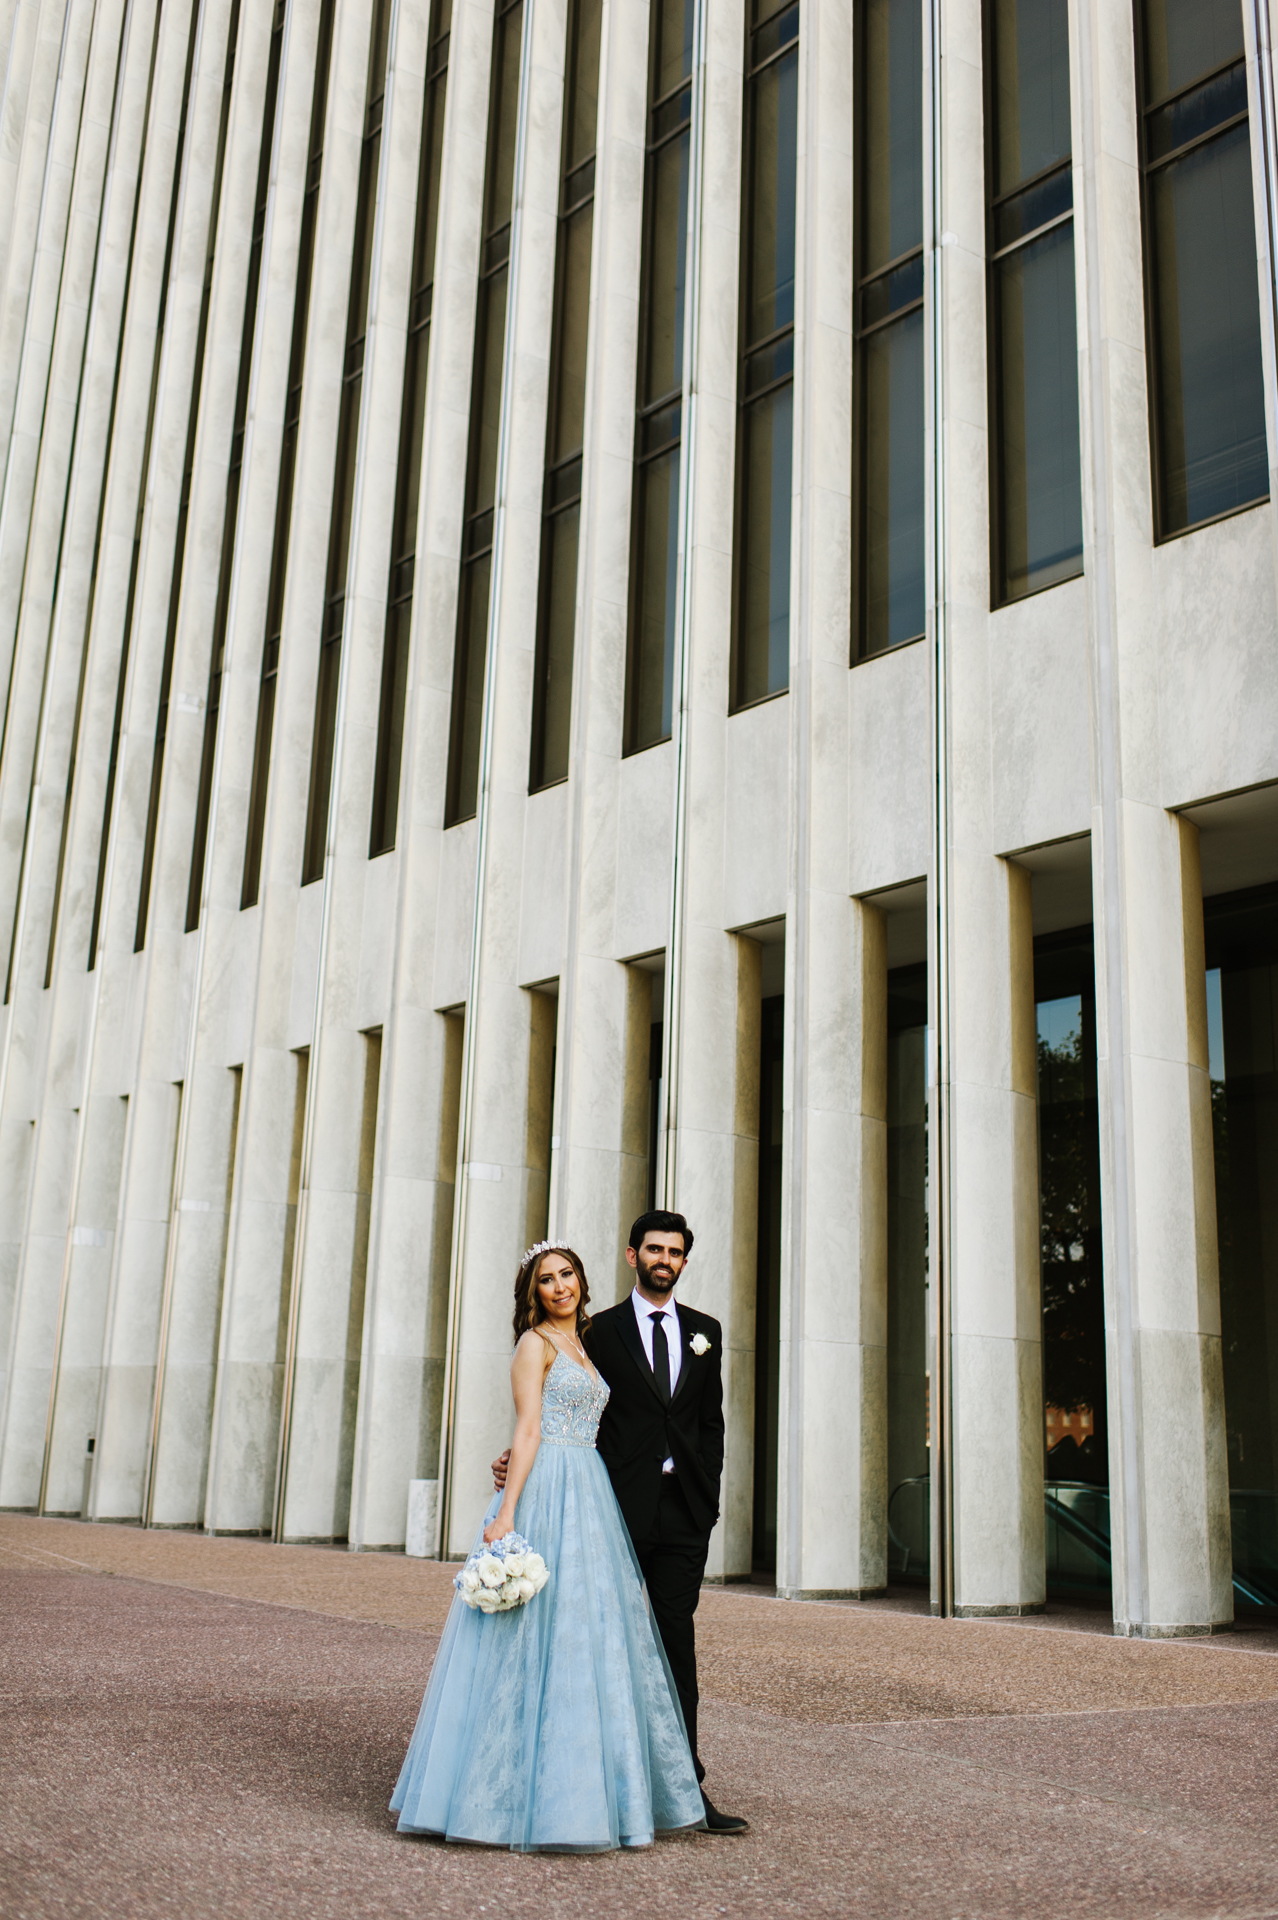 Empire State Plaza, Albany Wedding Elopement Portrait | The bride and groom pose for a portrait